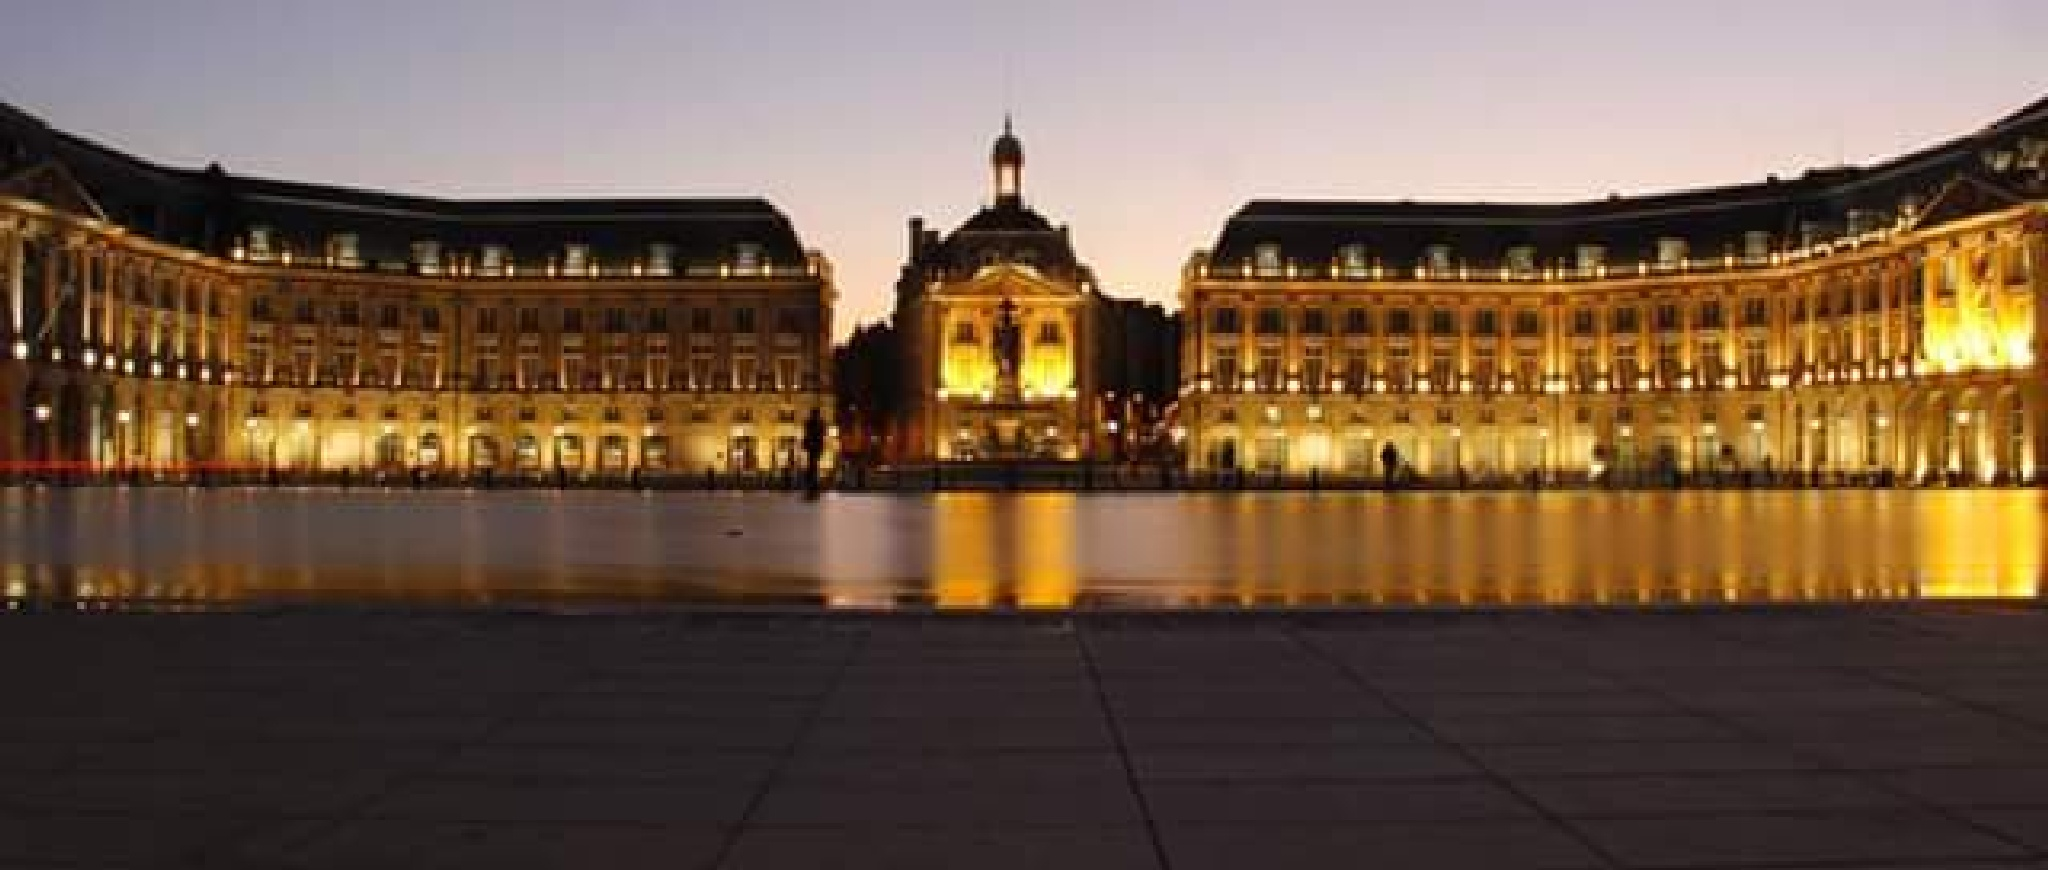 Bordeaux by night by thierrylorenzo